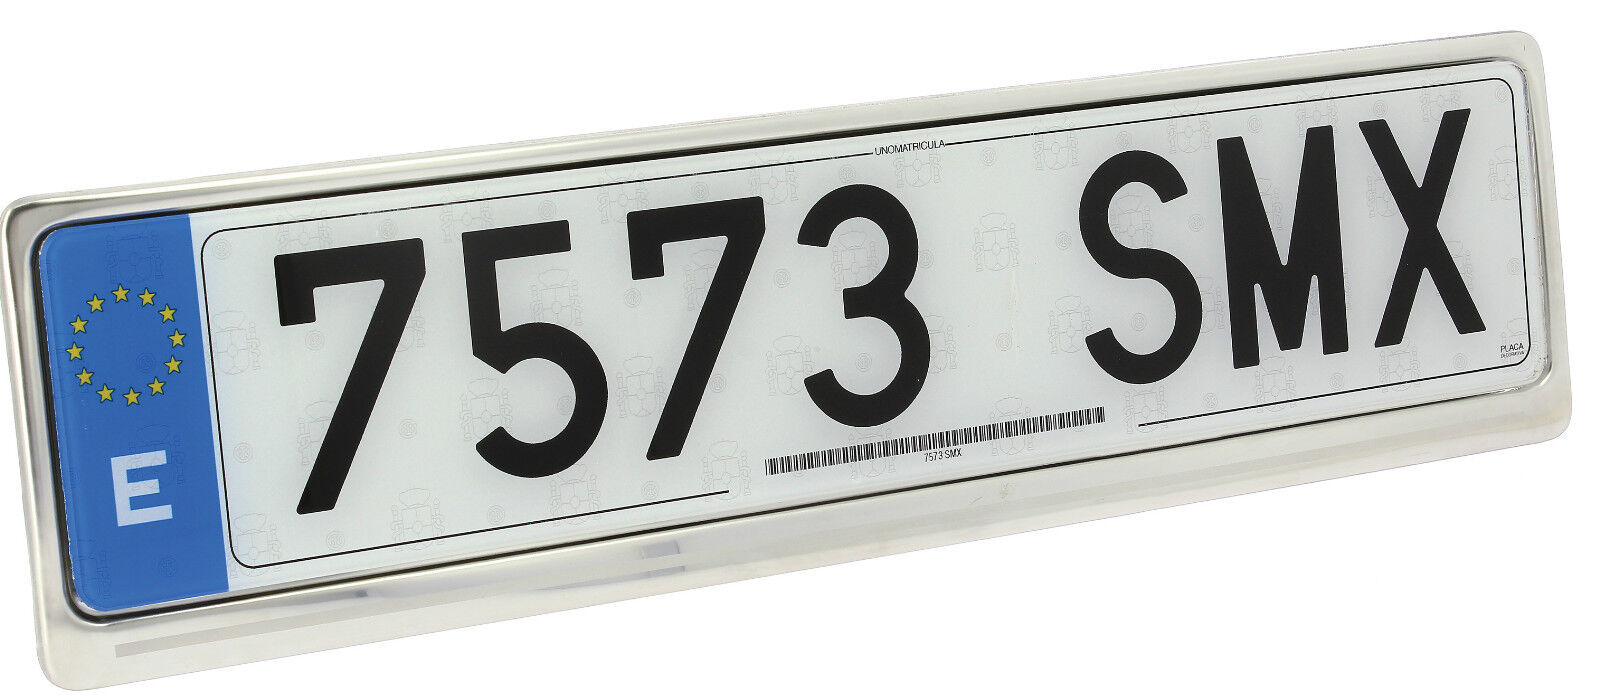 2 of 5 Sumex Car Silver Stainless Steel License Number Plate Holder Frame Surround #PBM  sc 1 st  PicClick UK & SUMEX CAR SILVER Stainless Steel License Number Plate Holder Frame ...